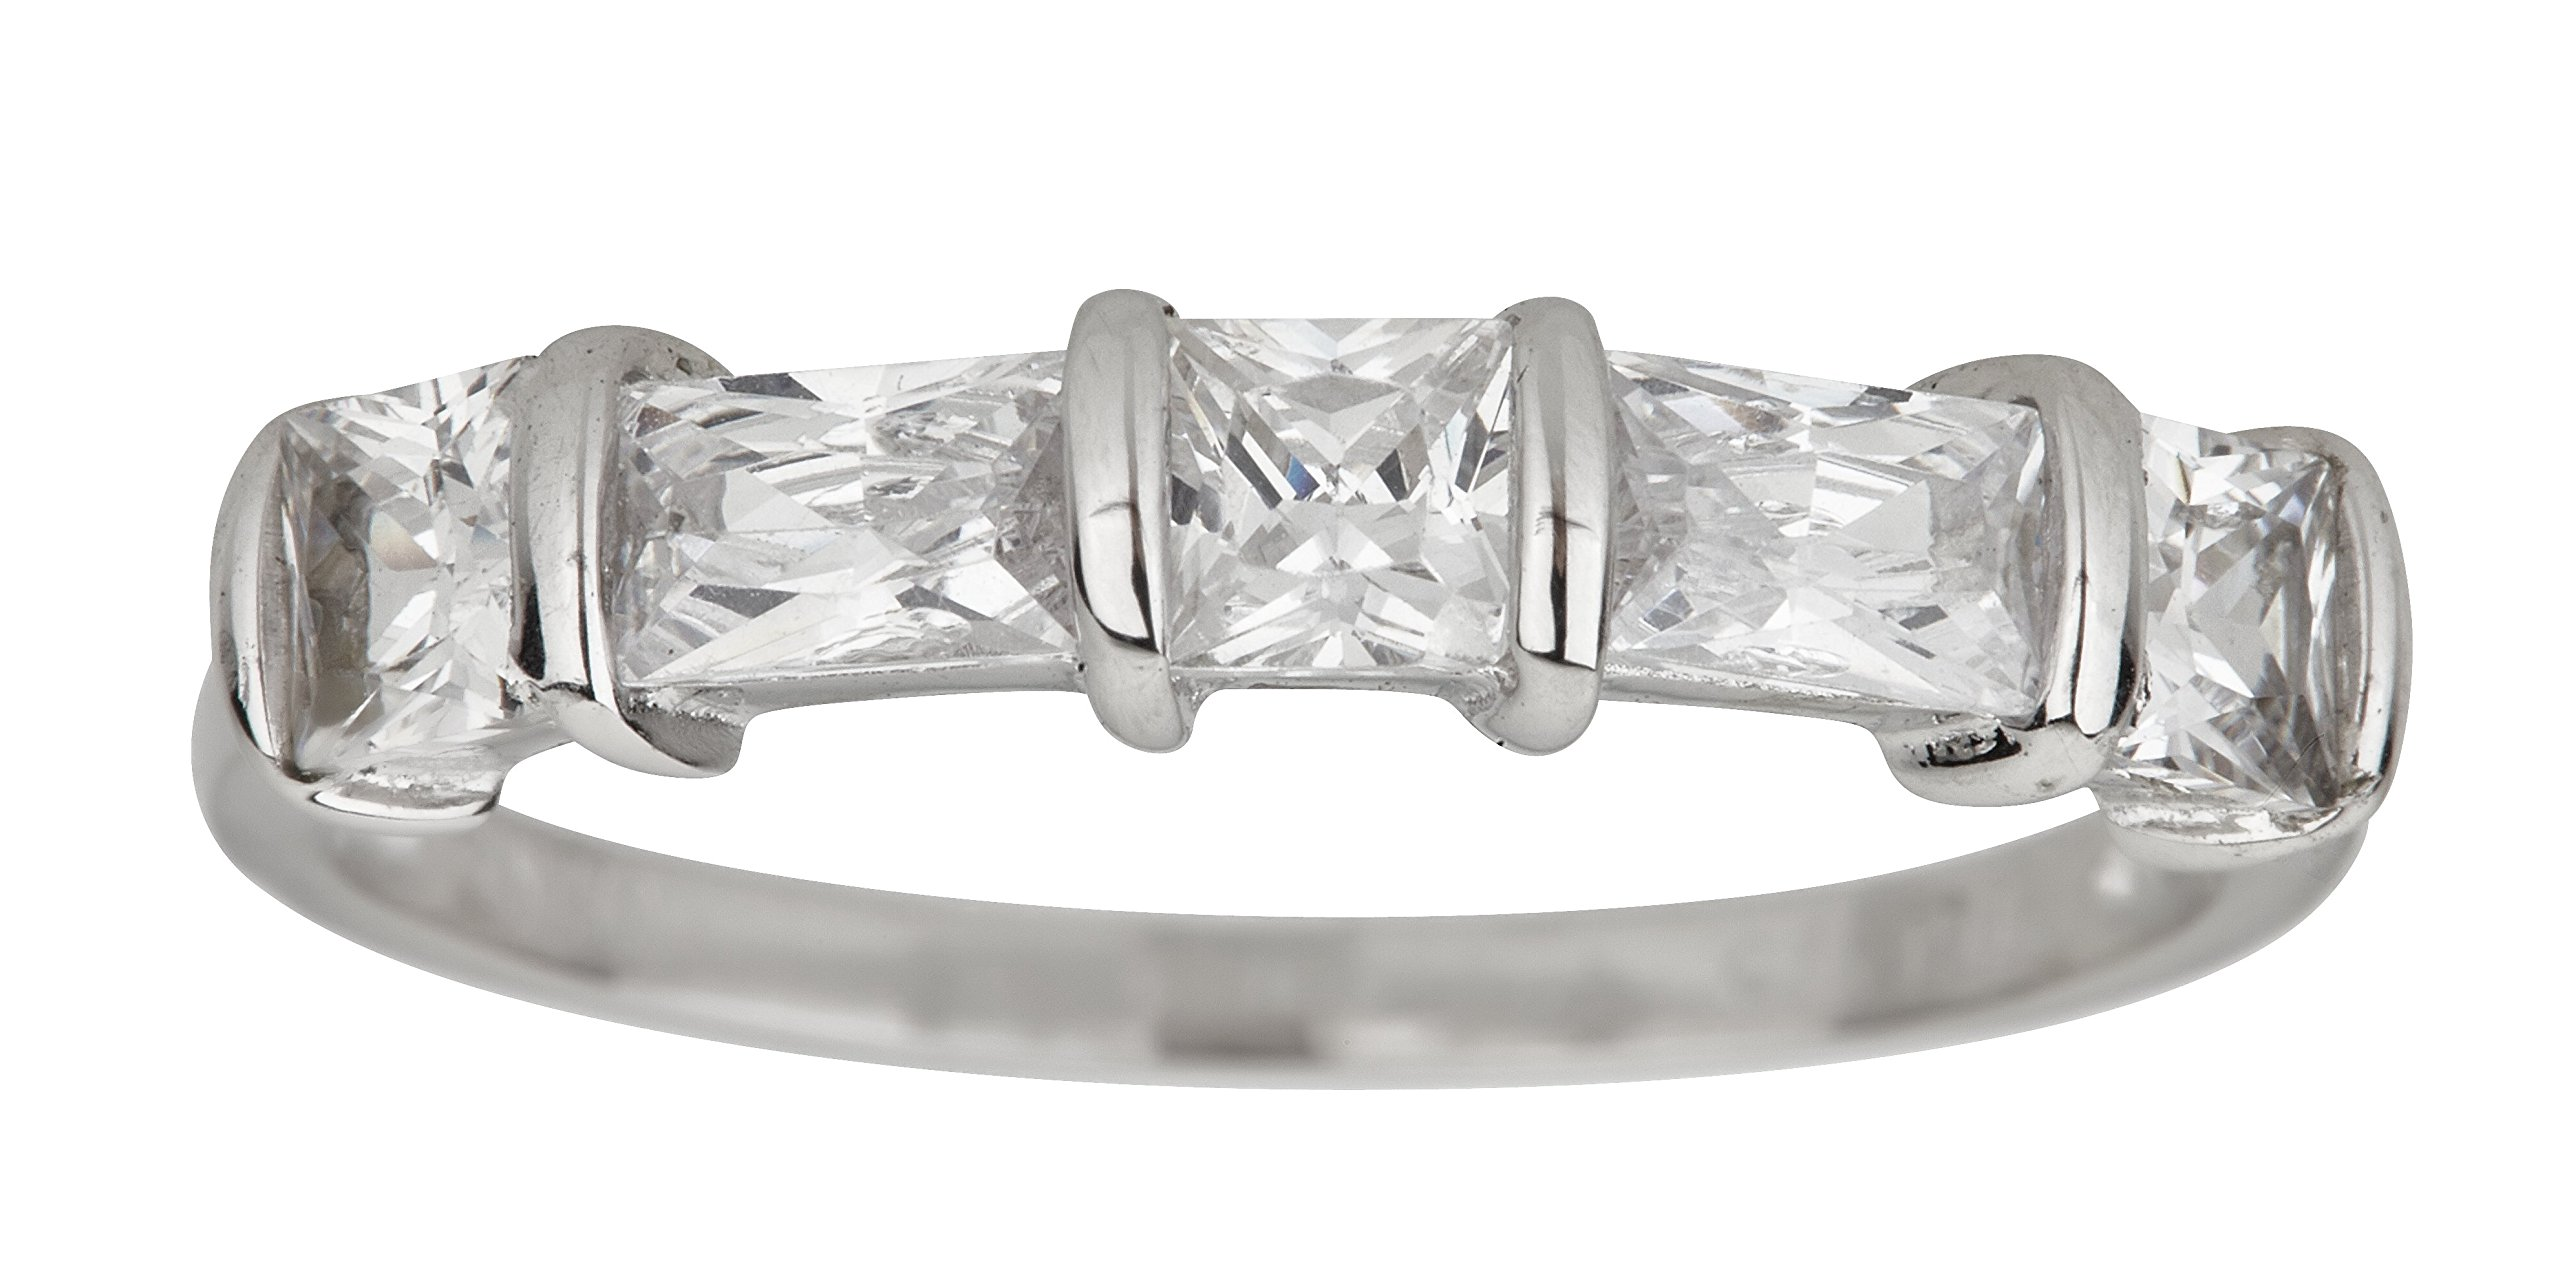 Sterling Silver Baguette & Princess Cut 5 Stone Cubic Zirconia Anniversary Band Ring